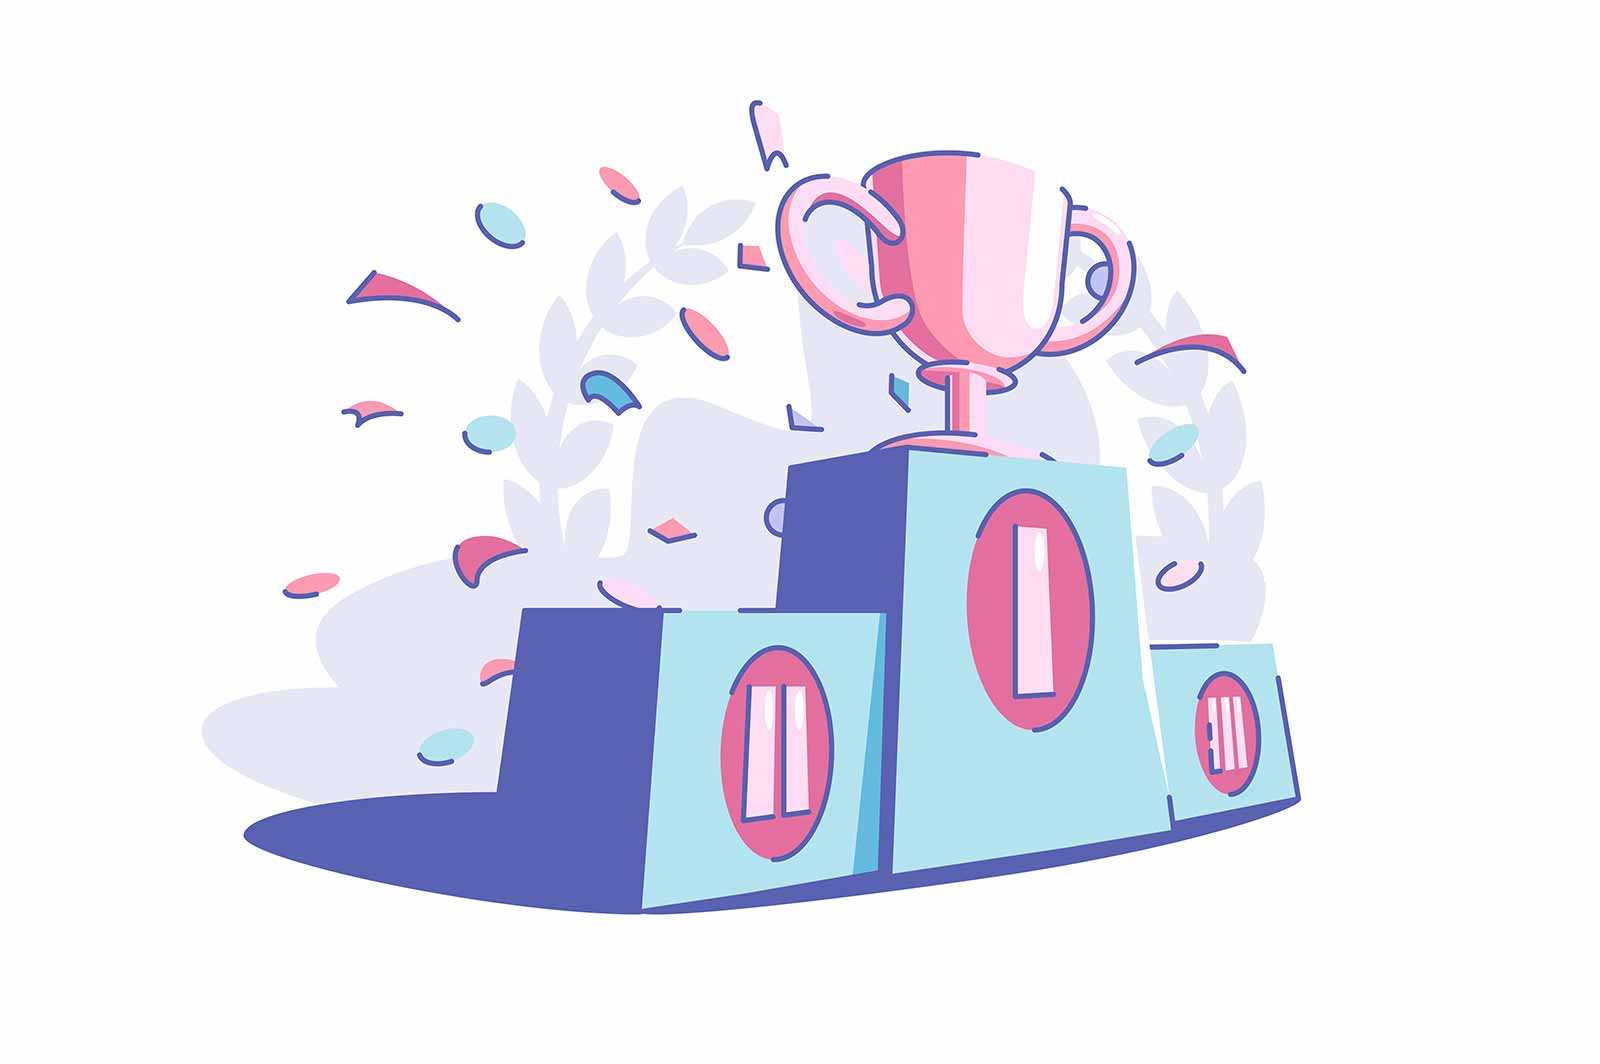 Winners sport trophy vector illustration. Golden cub award flat style. Festive confetti in air. Success and goal achievement concept. Isolated on white background